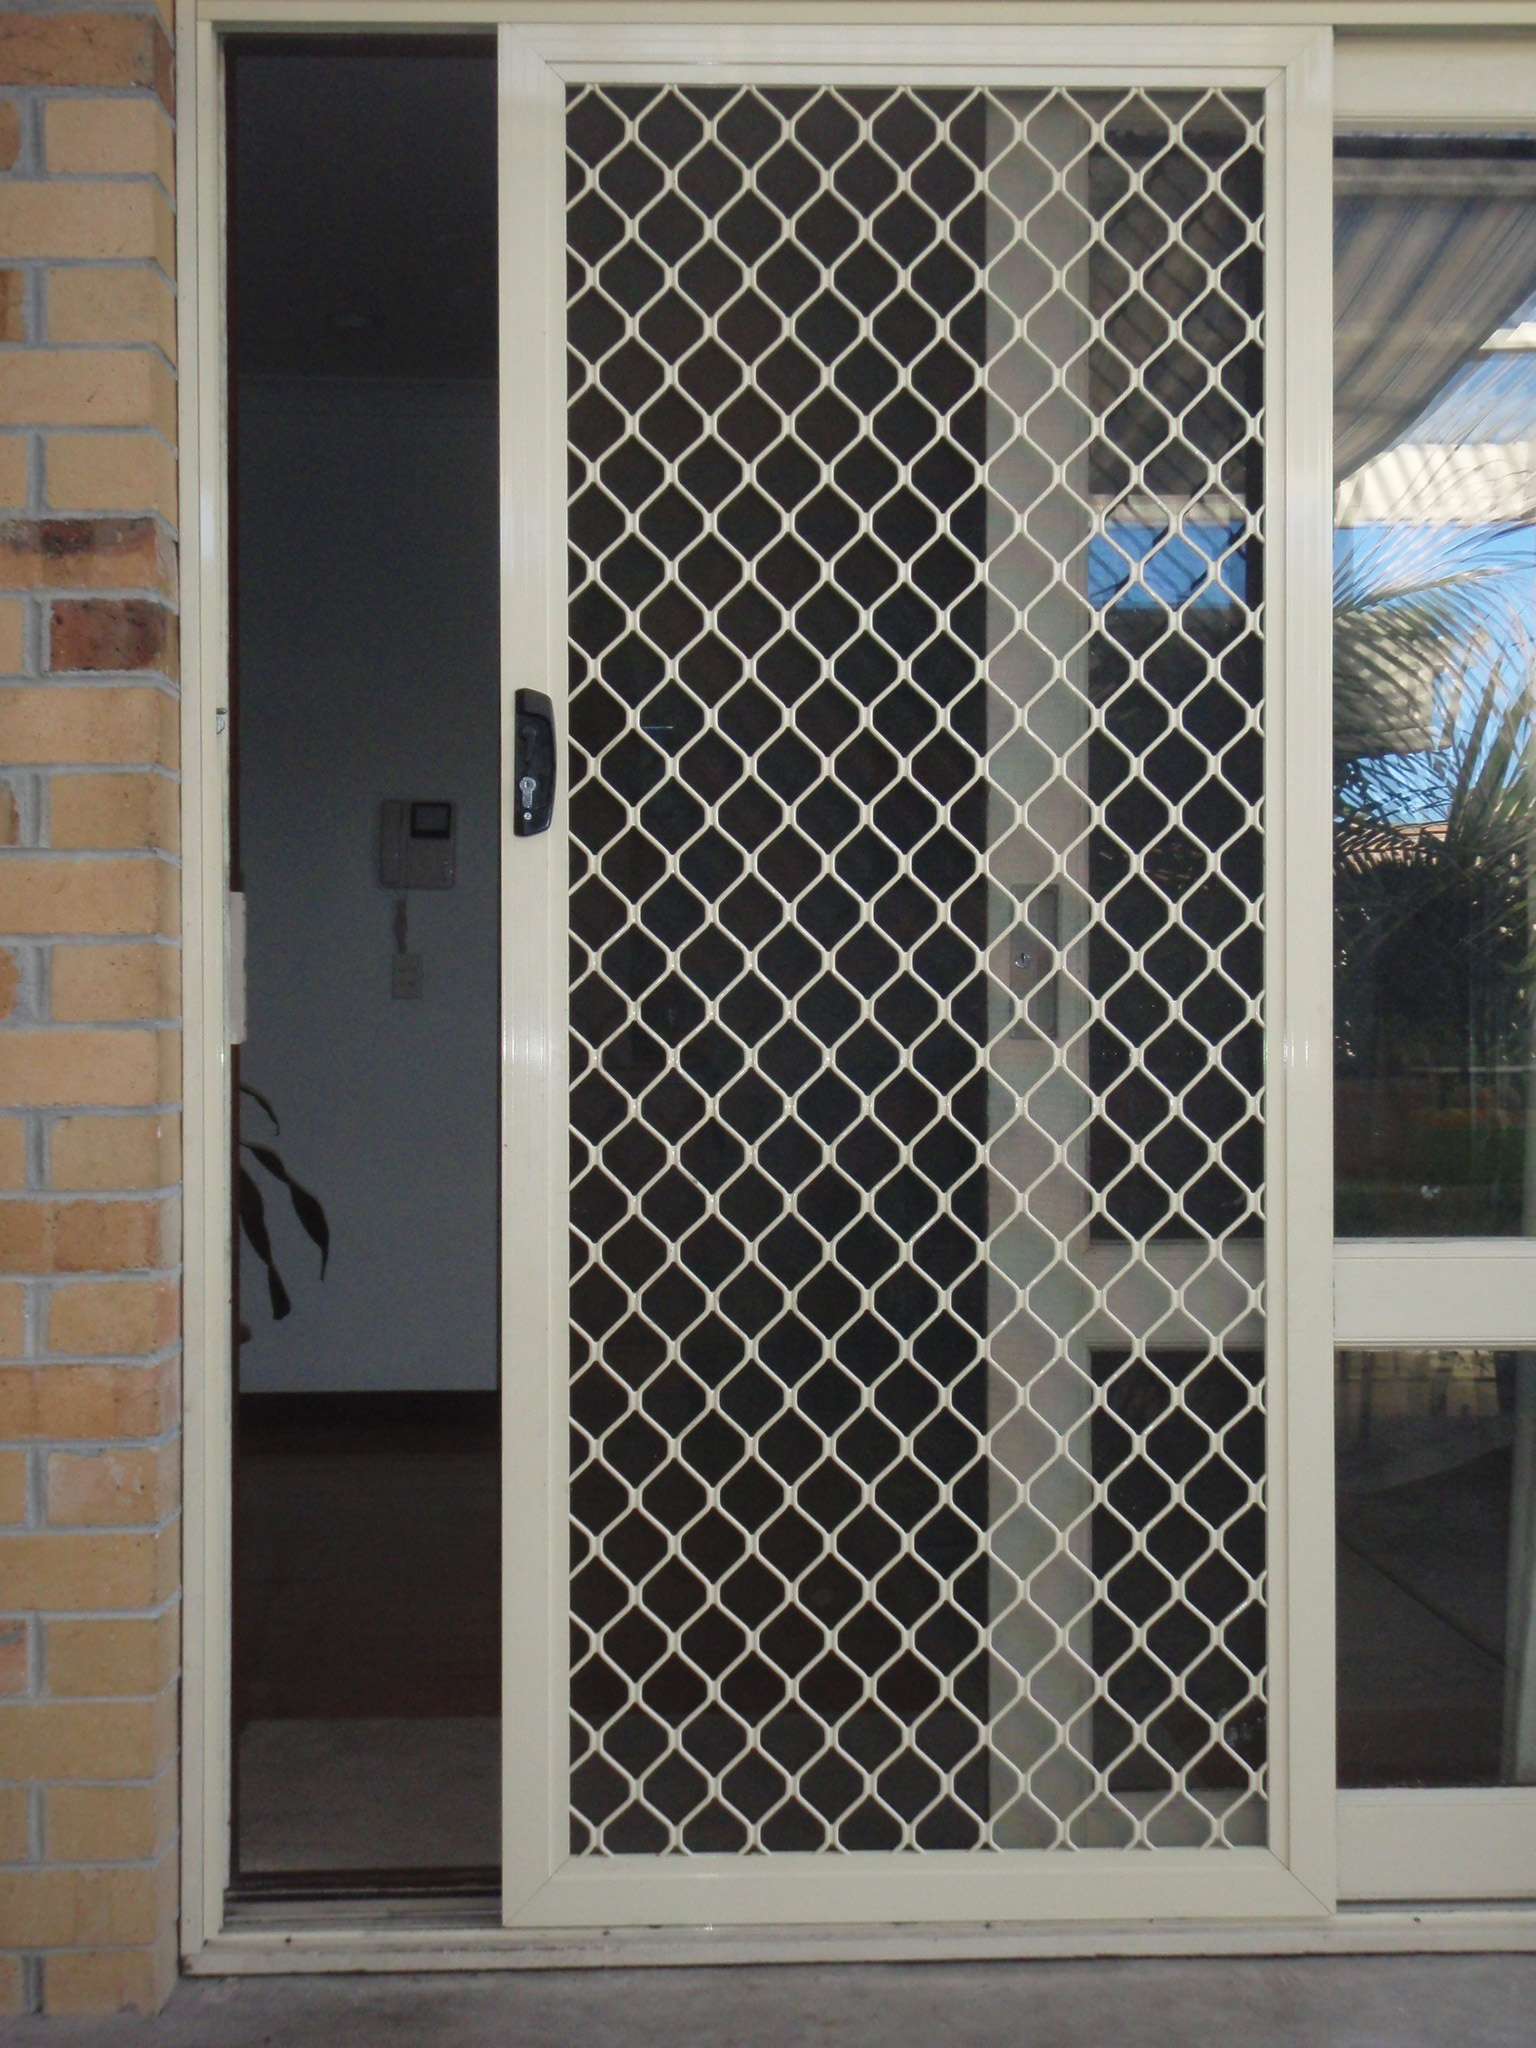 Sliding-Security-Doors-Melbourne-36-In-Excellent-Small-Home-Remodel-Ideas-with-Sliding-Security-Doors-Melbourne.jpg